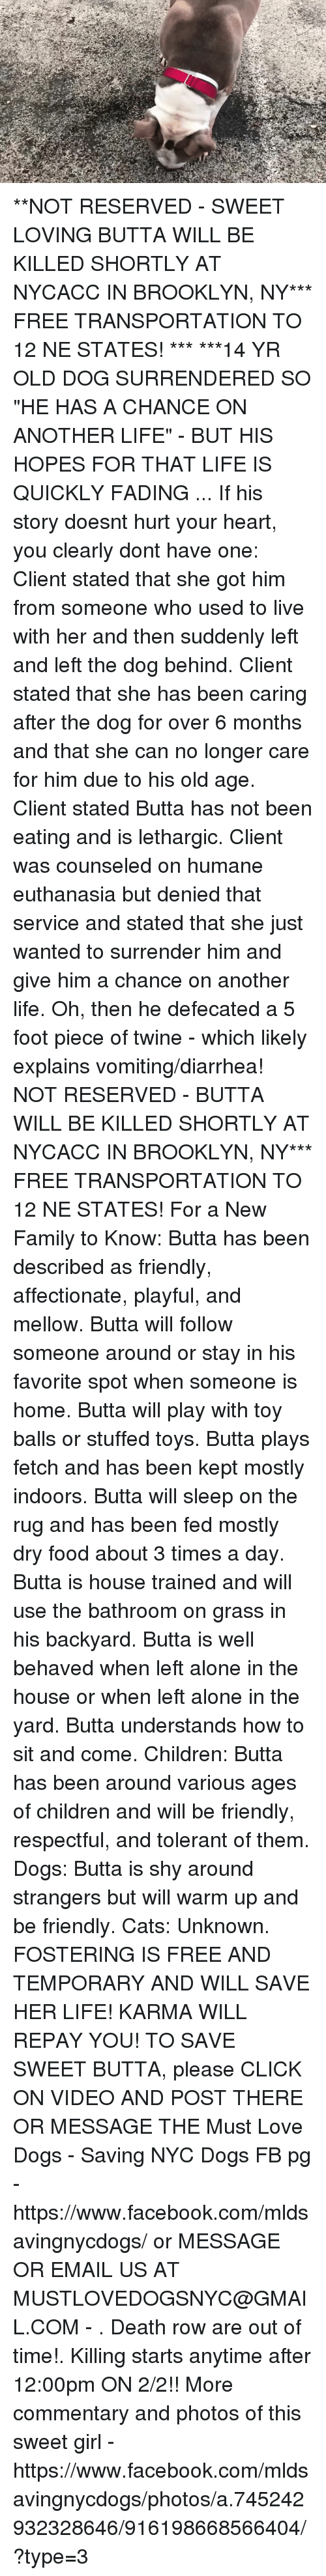 """Being Alone, Cats, and Children: **NOT RESERVED - SWEET LOVING BUTTA WILL BE KILLED SHORTLY AT NYCACC IN BROOKLYN, NY*** FREE TRANSPORTATION TO 12 NE STATES! ***  ***14 YR OLD DOG SURRENDERED SO """"HE HAS A CHANCE ON ANOTHER LIFE"""" - BUT HIS HOPES FOR THAT LIFE IS QUICKLY FADING ... If his story doesnt hurt your heart, you clearly dont have one: Client stated that she got him from someone who used to live with her and then suddenly left and left the dog behind. Client stated that she has been caring after the dog for over 6 months and that she can no longer care for him due to his old age. Client stated Butta has not been eating and is lethargic. Client was counseled on humane euthanasia but denied that service and stated that she just wanted to surrender him and give him a chance on another life. Oh, then he defecated a 5 foot piece of twine - which likely explains vomiting/diarrhea! NOT RESERVED - BUTTA WILL BE KILLED SHORTLY AT NYCACC IN BROOKLYN, NY*** FREE TRANSPORTATION TO 12 NE STATES!   For a New Family to Know: Butta has been described as friendly, affectionate, playful, and mellow. Butta will follow someone around or stay in his favorite spot when someone is home. Butta will play with toy balls or stuffed toys. Butta plays fetch and has been kept mostly indoors. Butta will sleep on the rug and has been fed mostly dry food about 3 times a day. Butta is house trained and will use the bathroom on grass in his backyard. Butta is well behaved when left alone in the house or when left alone in the yard. Butta understands how to sit and come.   Children: Butta has been around various ages of children and will be friendly, respectful, and tolerant of them.  Dogs: Butta is shy around strangers but will warm up and be friendly.  Cats: Unknown.  FOSTERING IS FREE AND TEMPORARY AND WILL SAVE HER LIFE! KARMA WILL REPAY YOU!  TO SAVE SWEET BUTTA, please CLICK ON VIDEO AND POST THERE OR MESSAGE THE Must Love Dogs - Saving NYC Dogs FB pg -https://www.facebook.com/mldsavingny"""